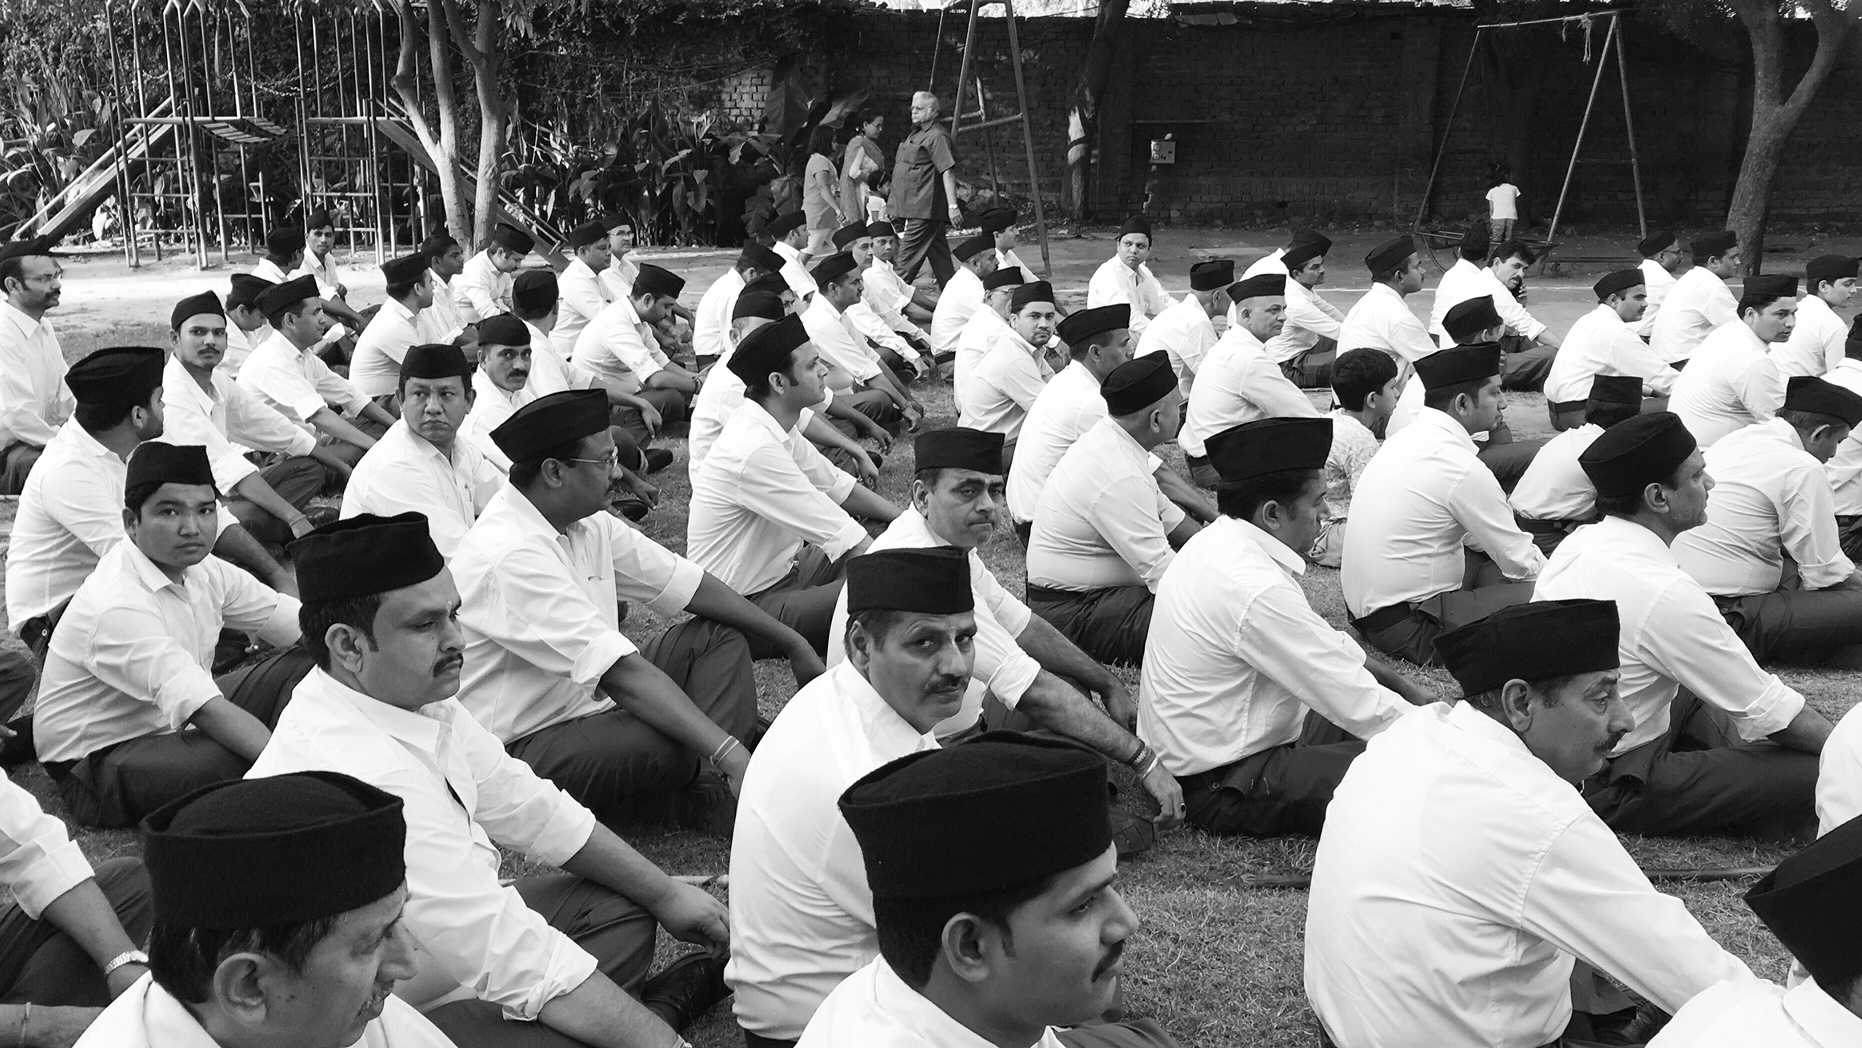 Photo Feature: An RSS Training Camp at Work